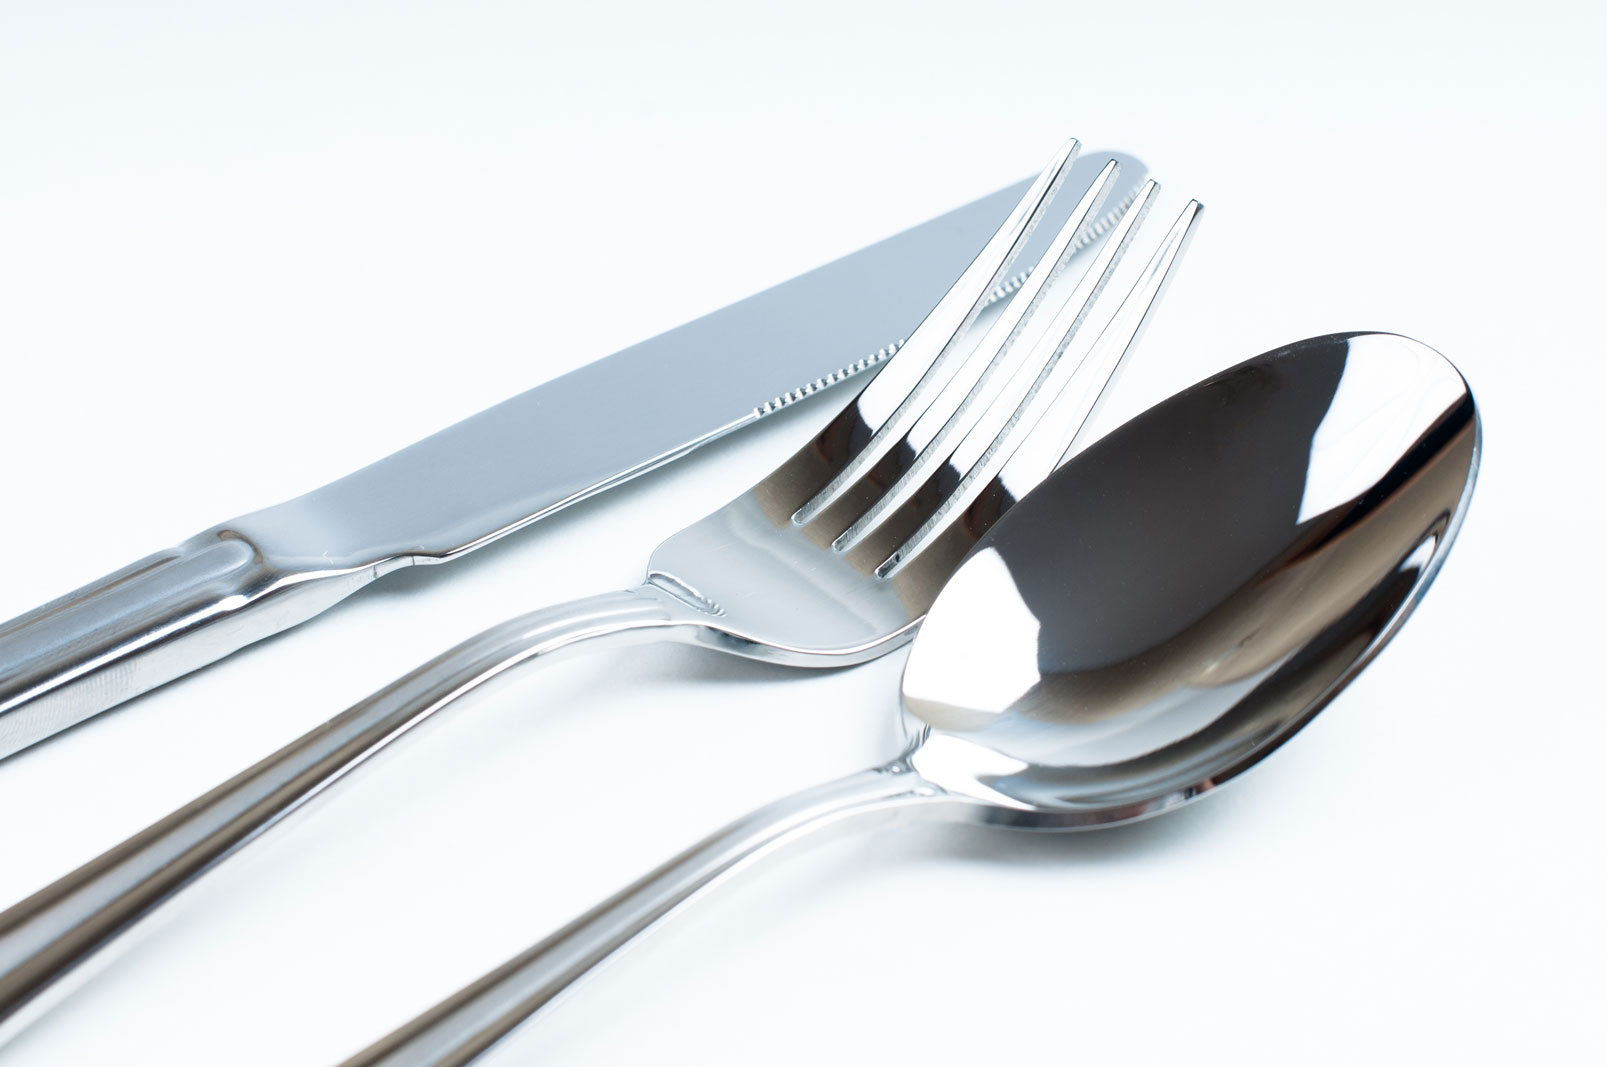 crs_foodbev_content_silverware